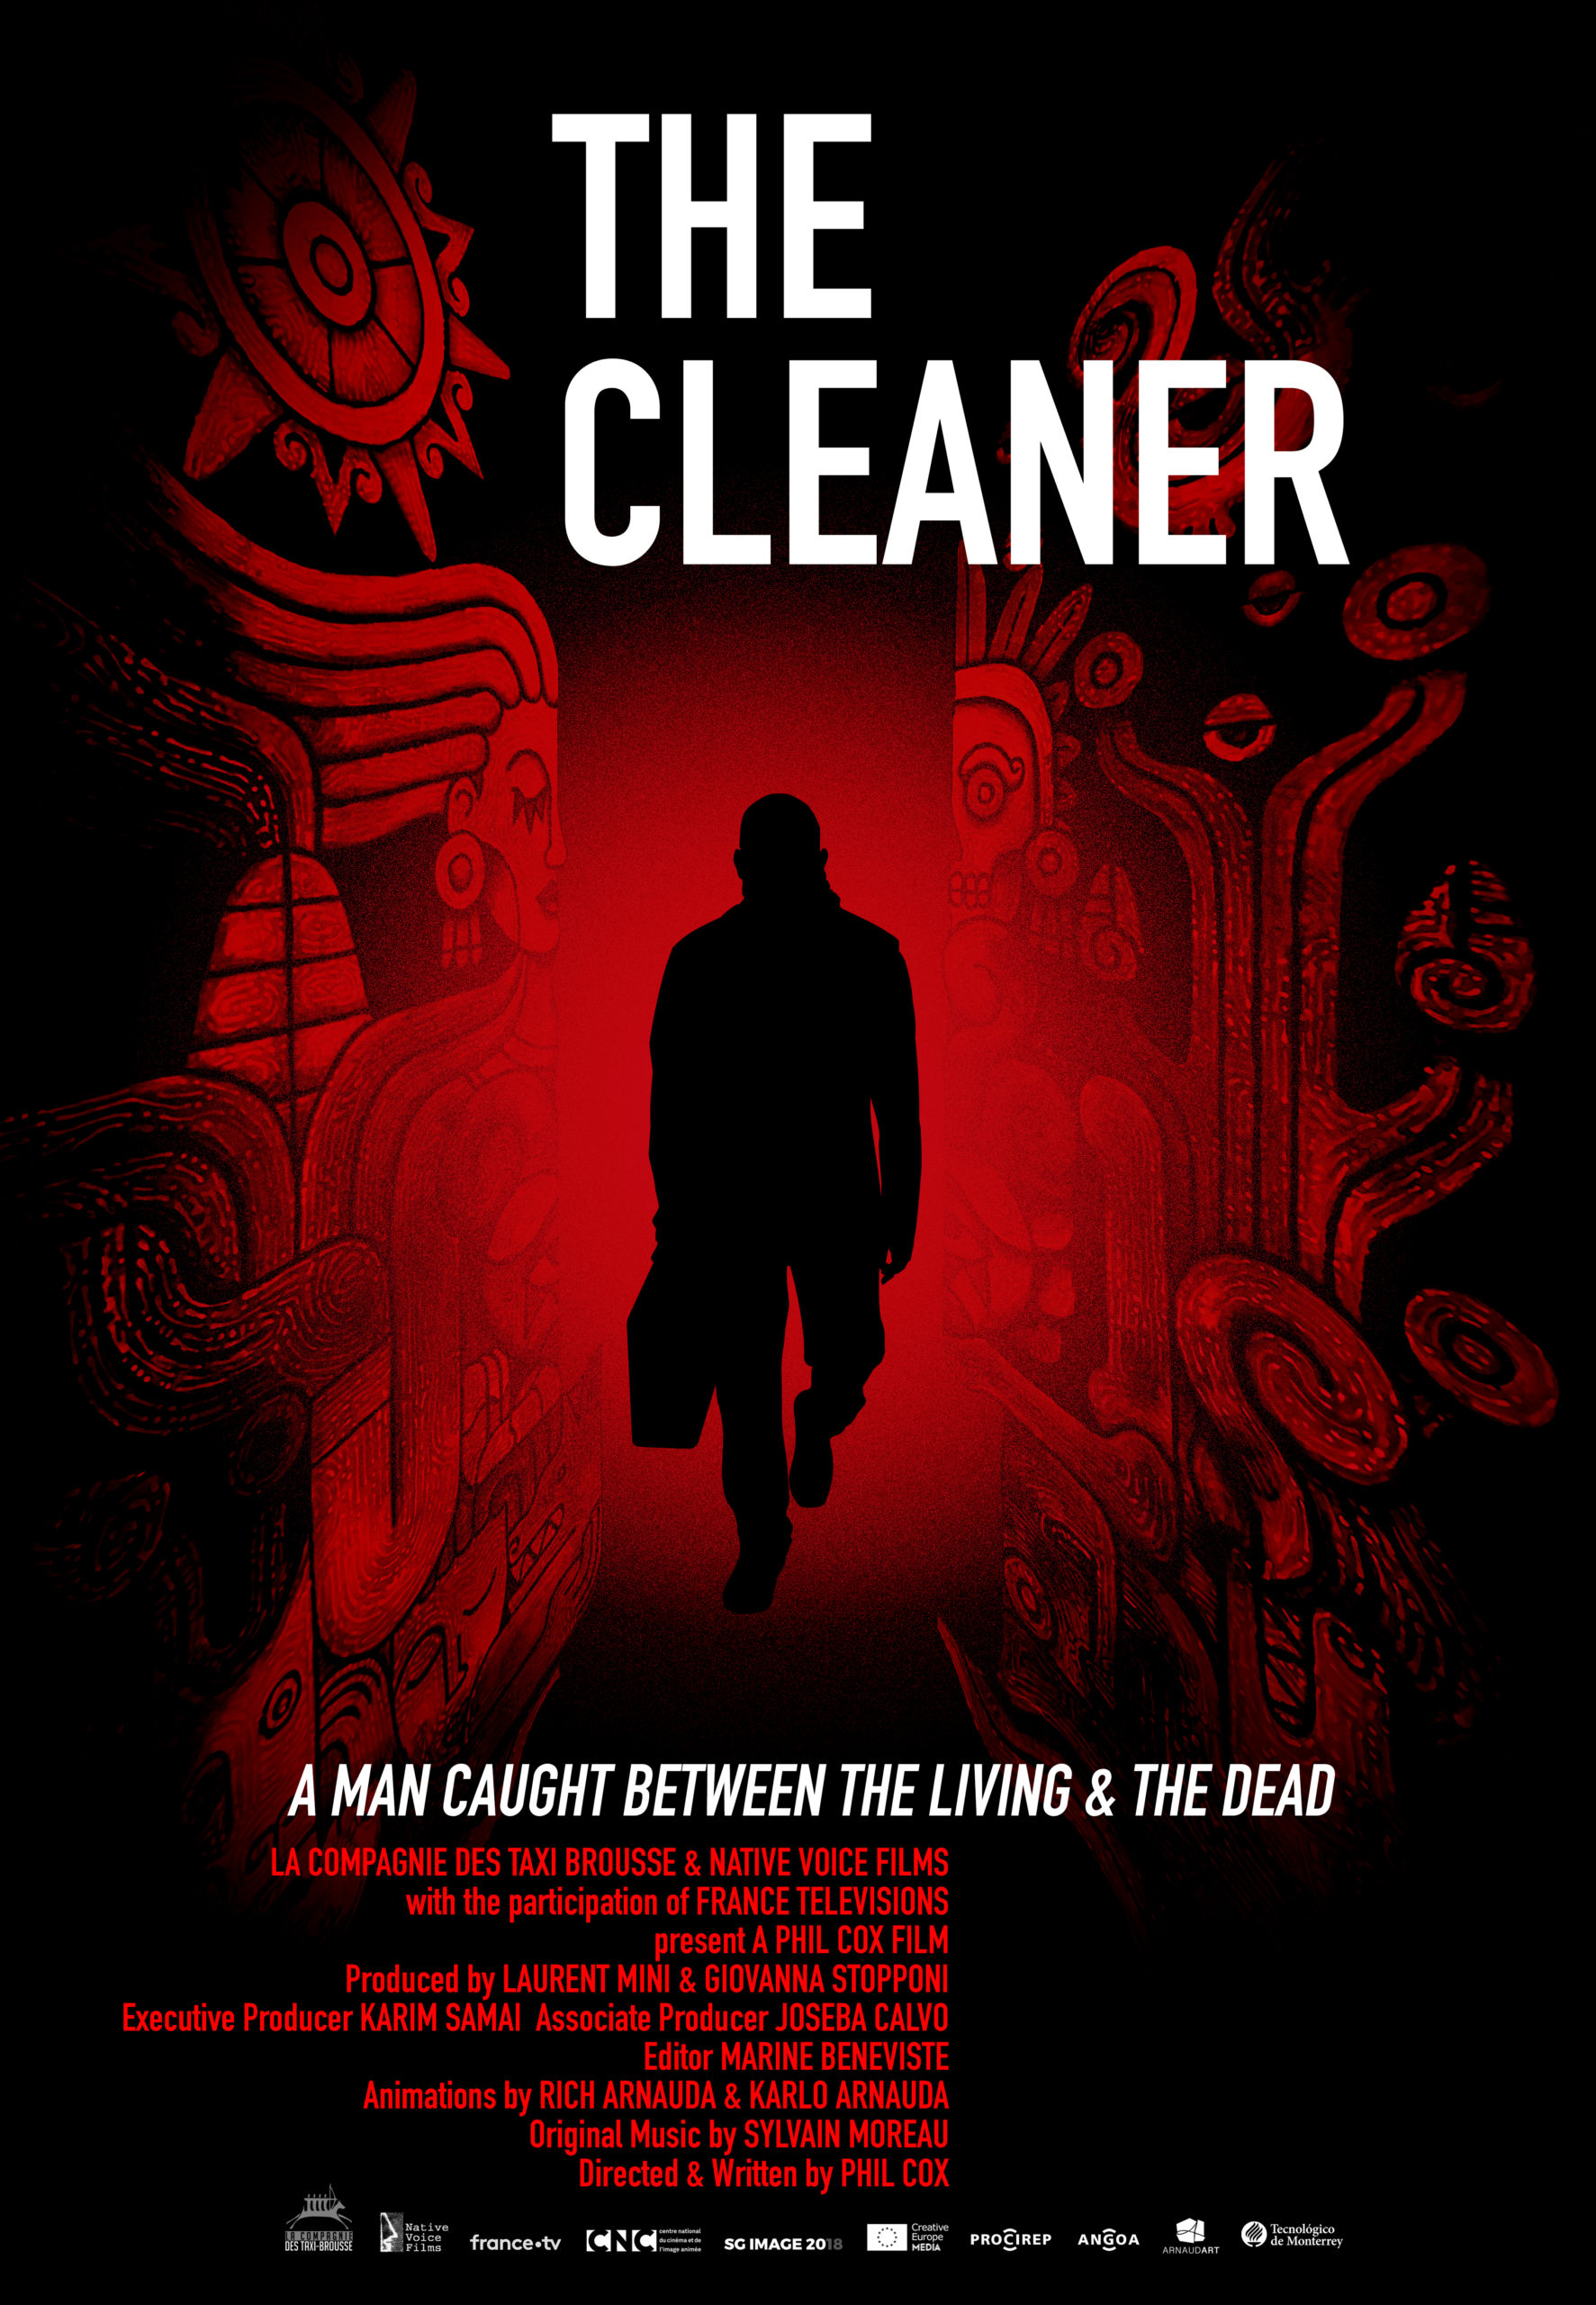 Le cleaner